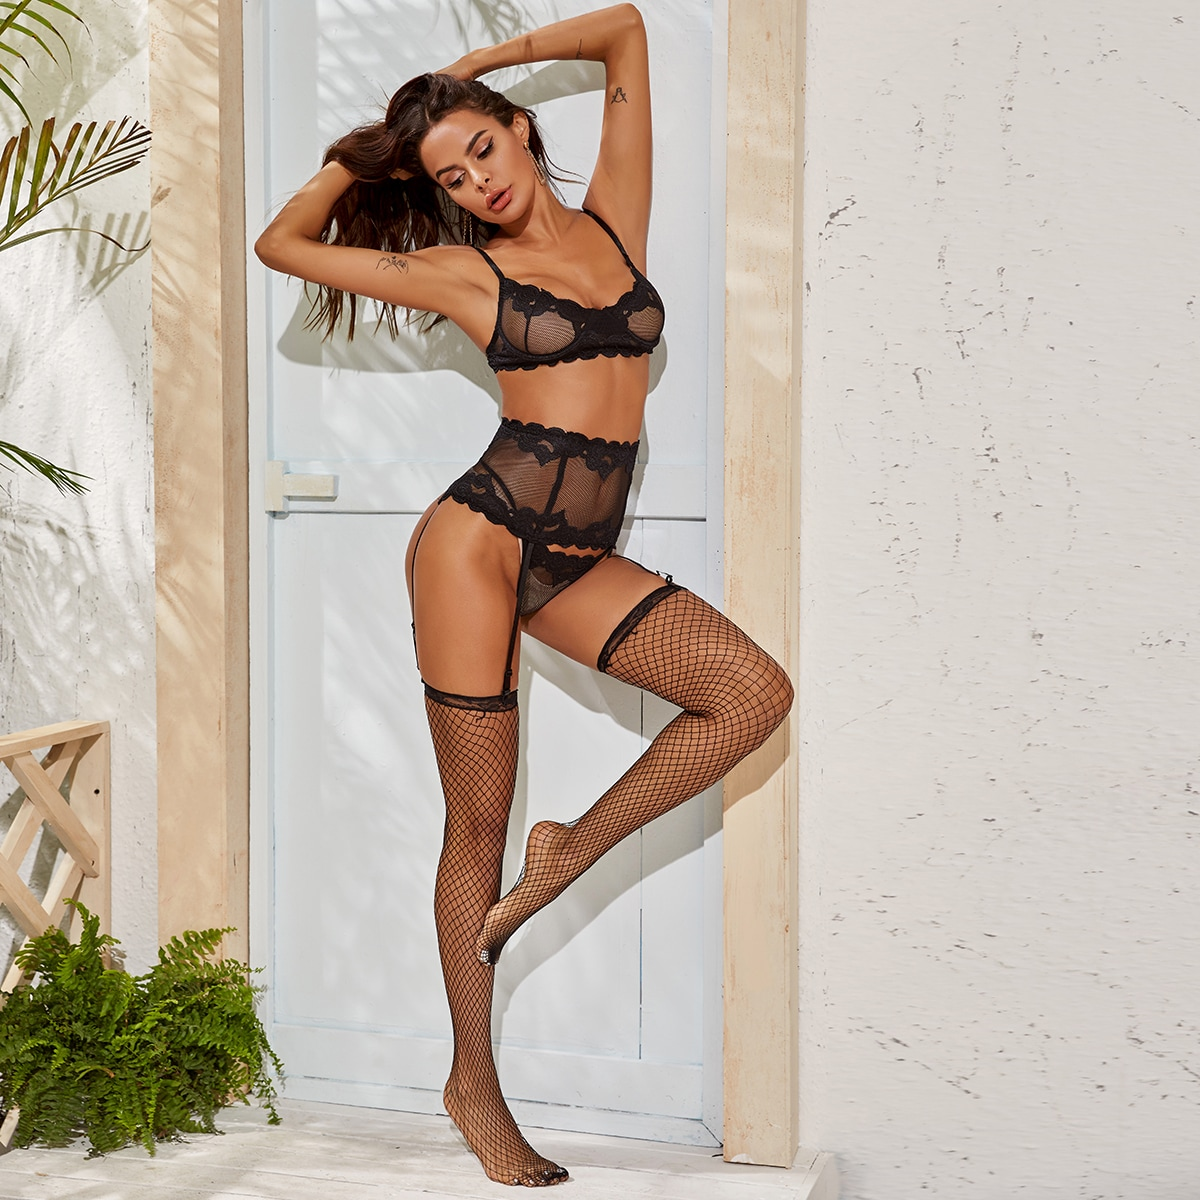 SHEIN / Contrast Lace Underwire Lingerie Set & Stockings